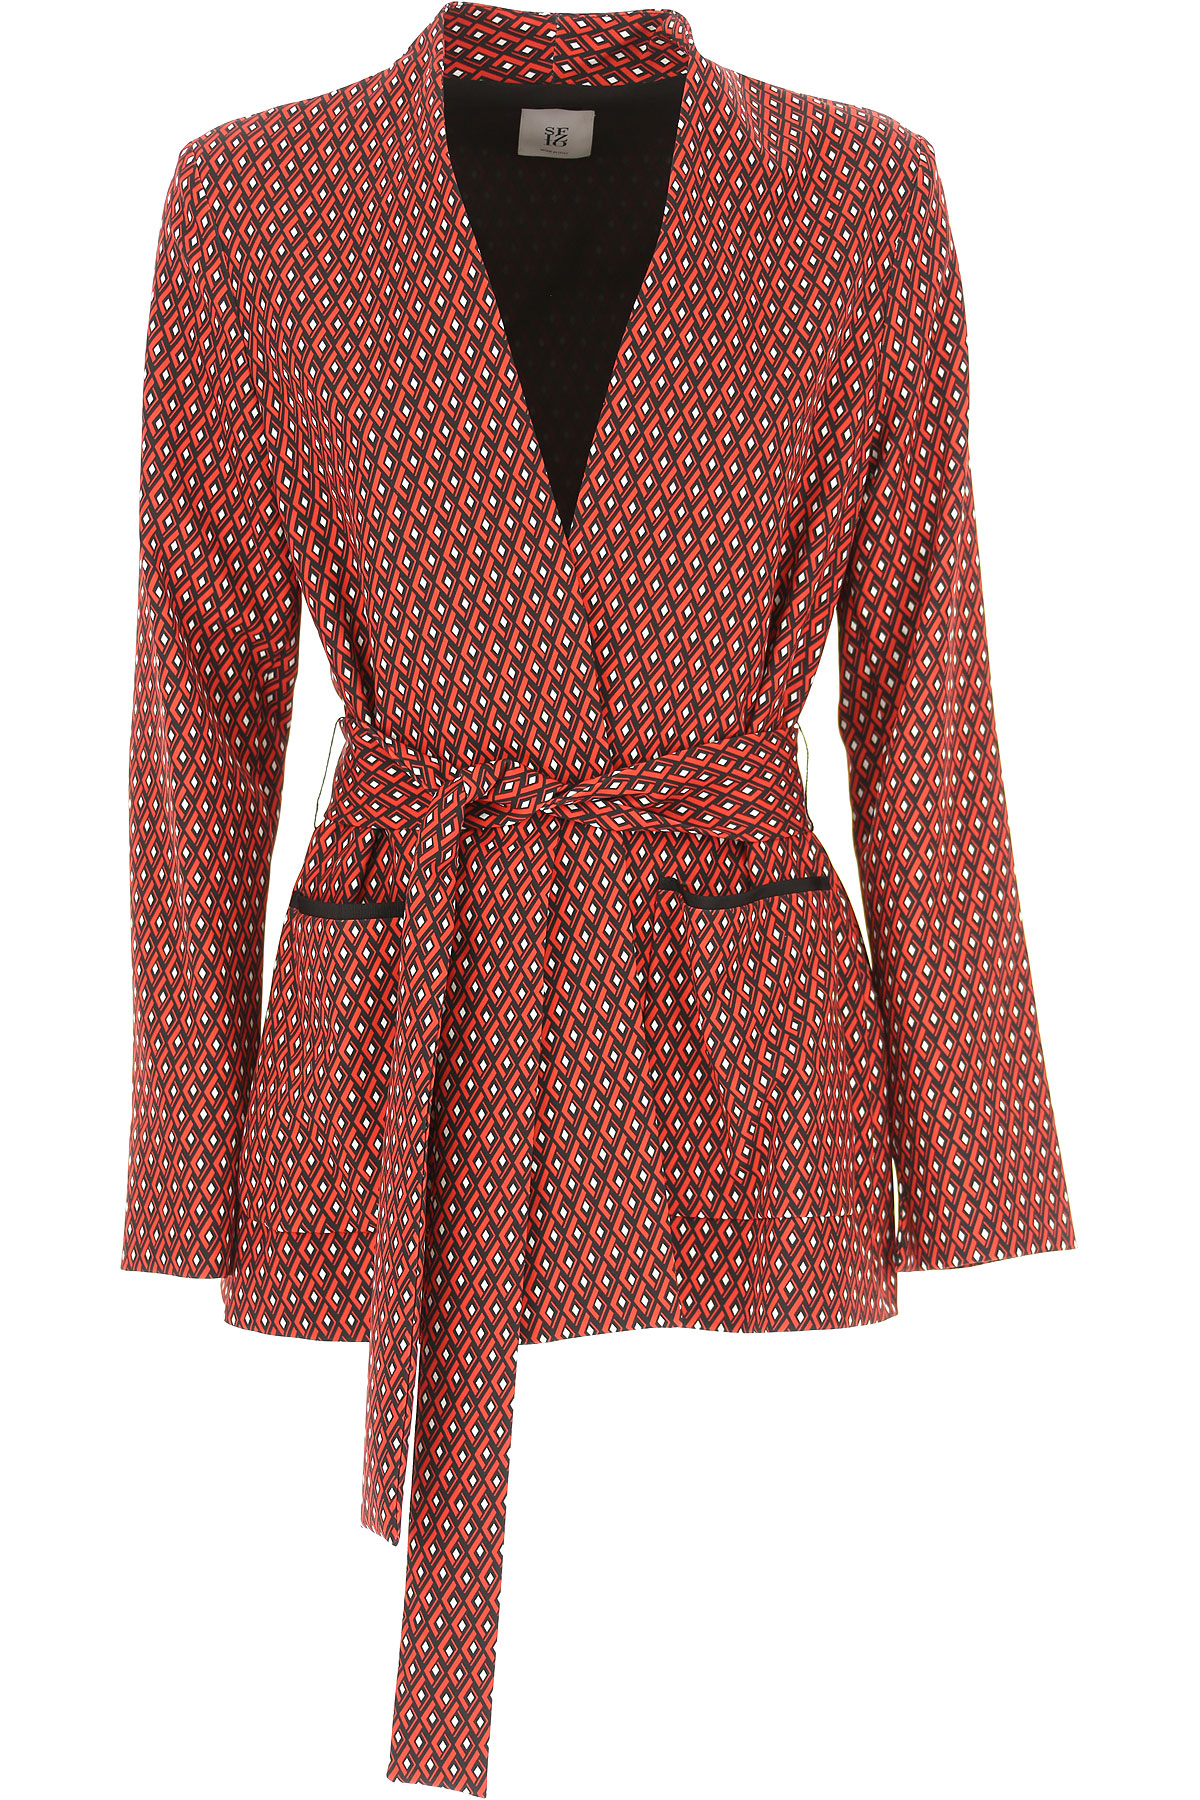 Image of Sfizio Jacket for Women, Red, polyester, 2017, 10 12 6 8